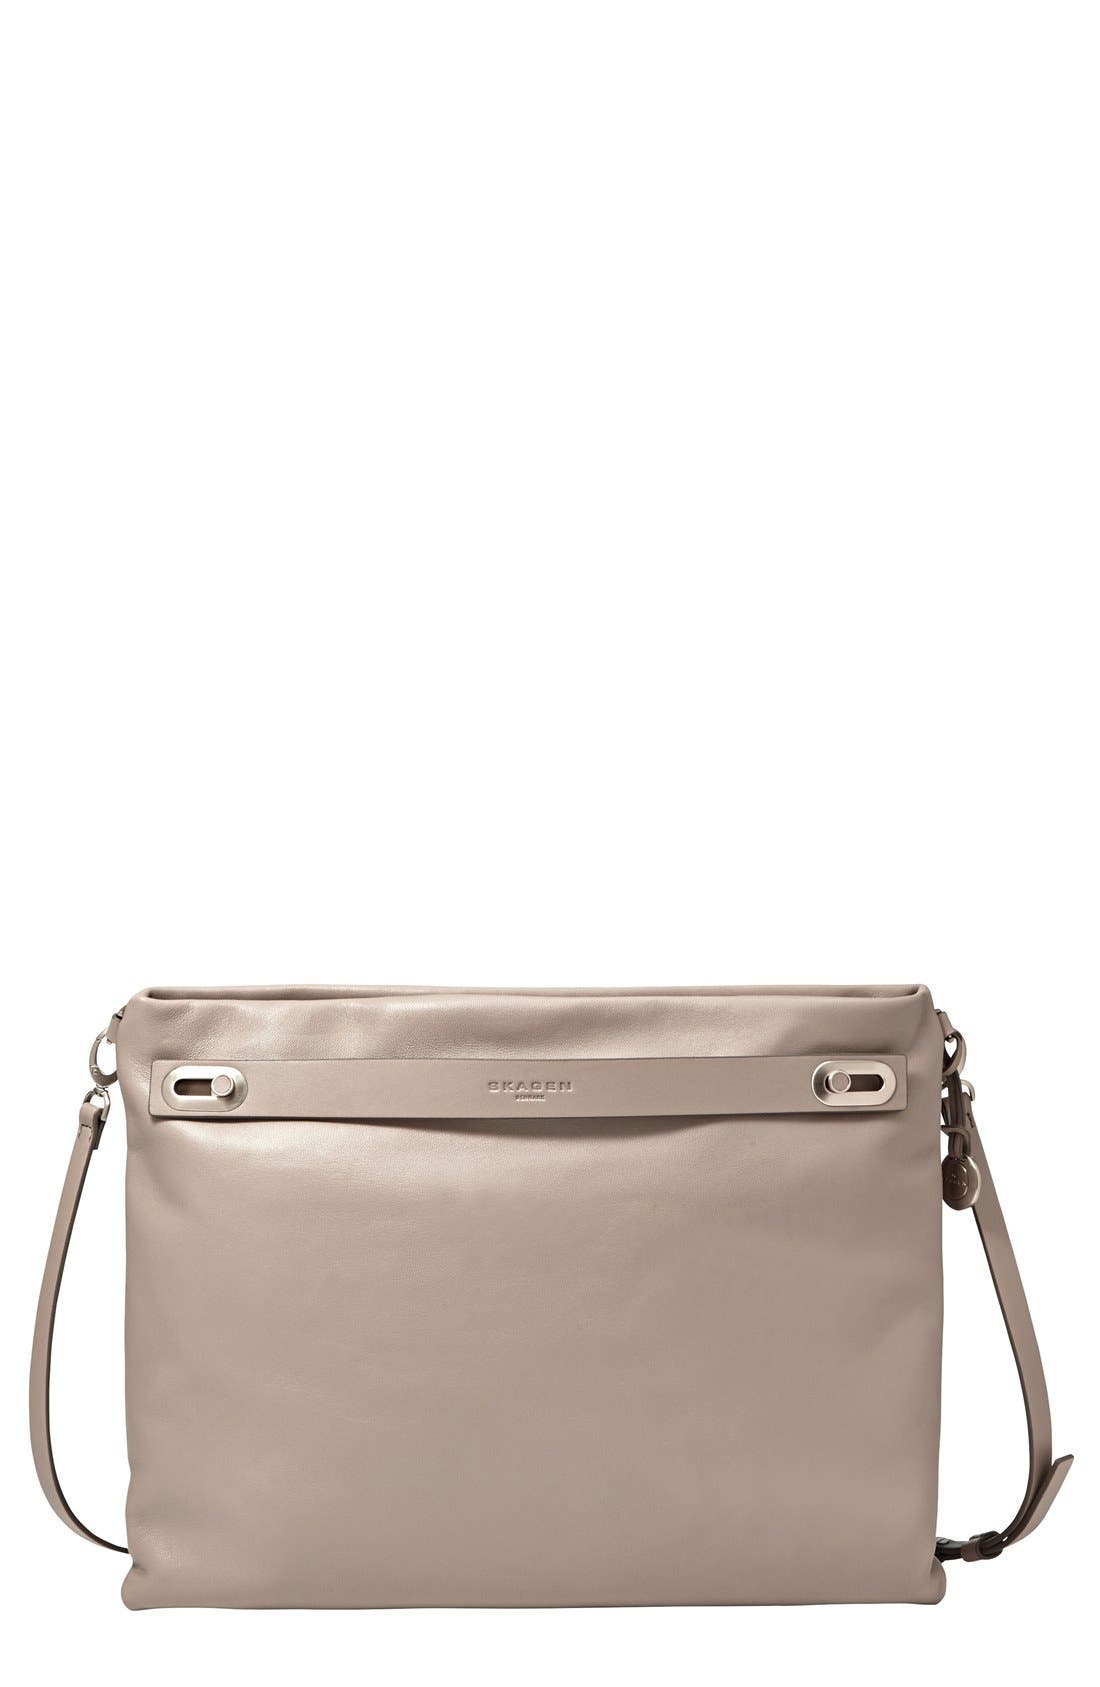 Alternate Image 3  - Skagen 'Mikkeline' Leather Satchel